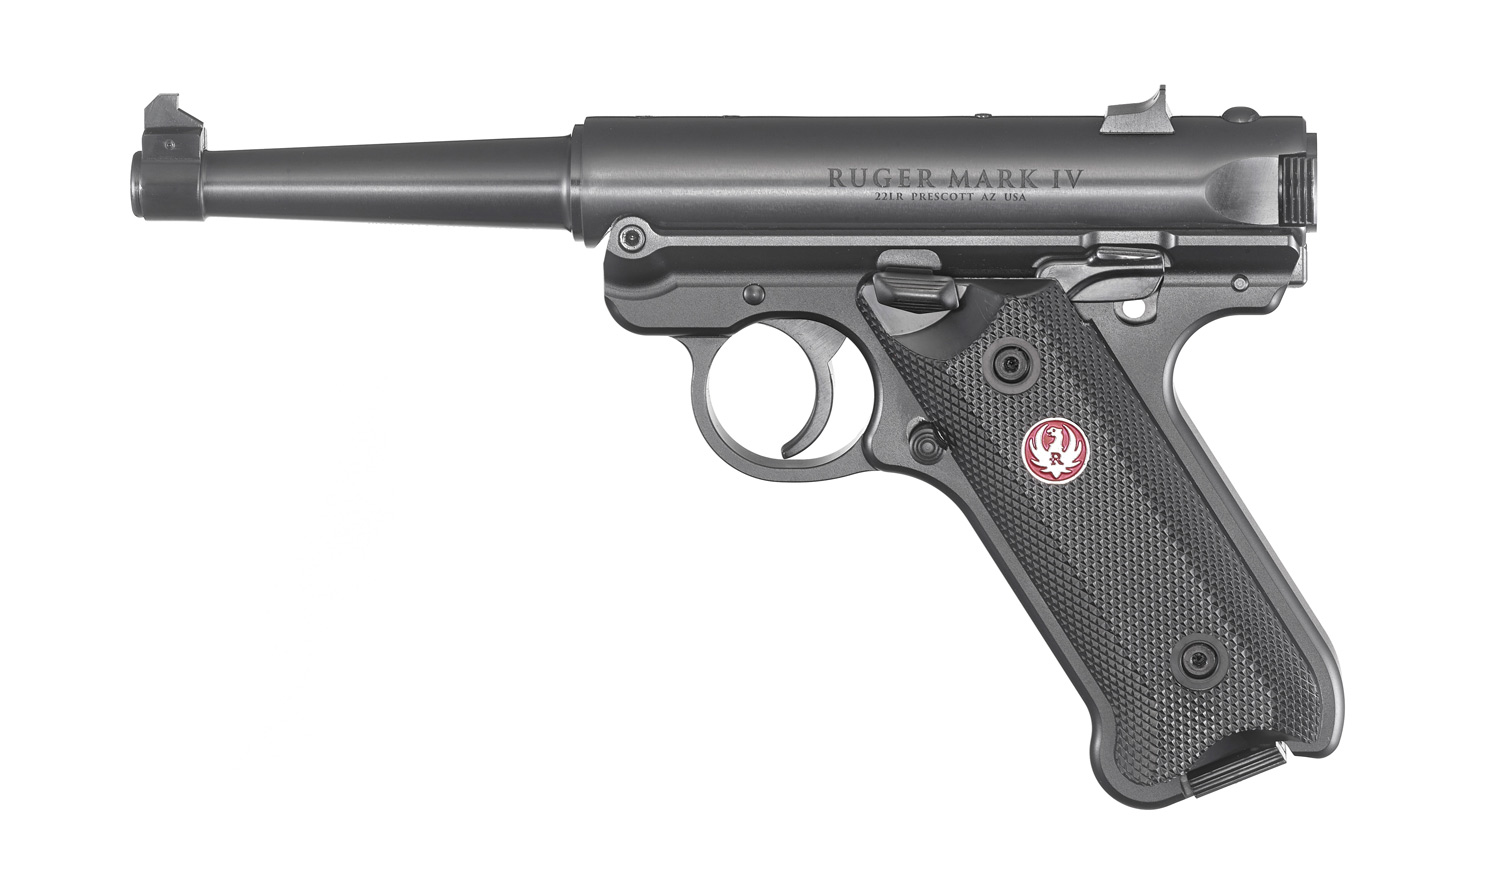 The Rimfire Report: 22LR Target Pistol Face-off! MK IV, vs Victory, vs Buckmark